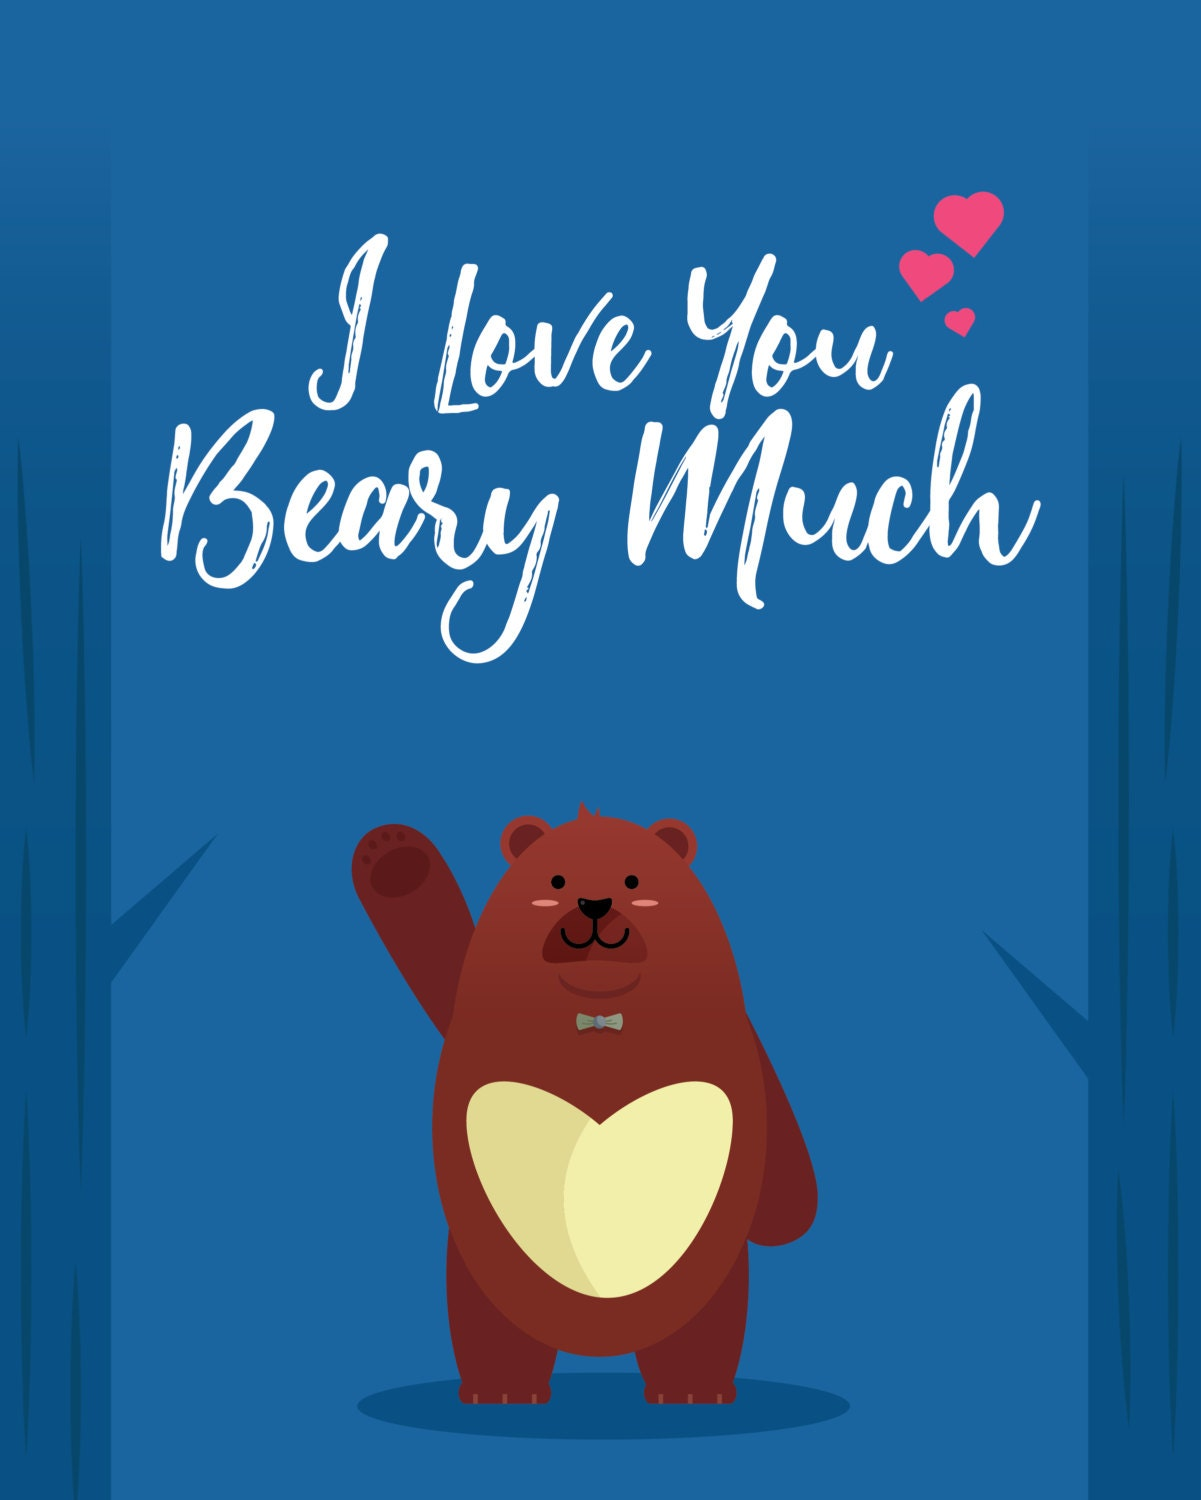 I Love You Beary Much Downloadable Greeting Cards